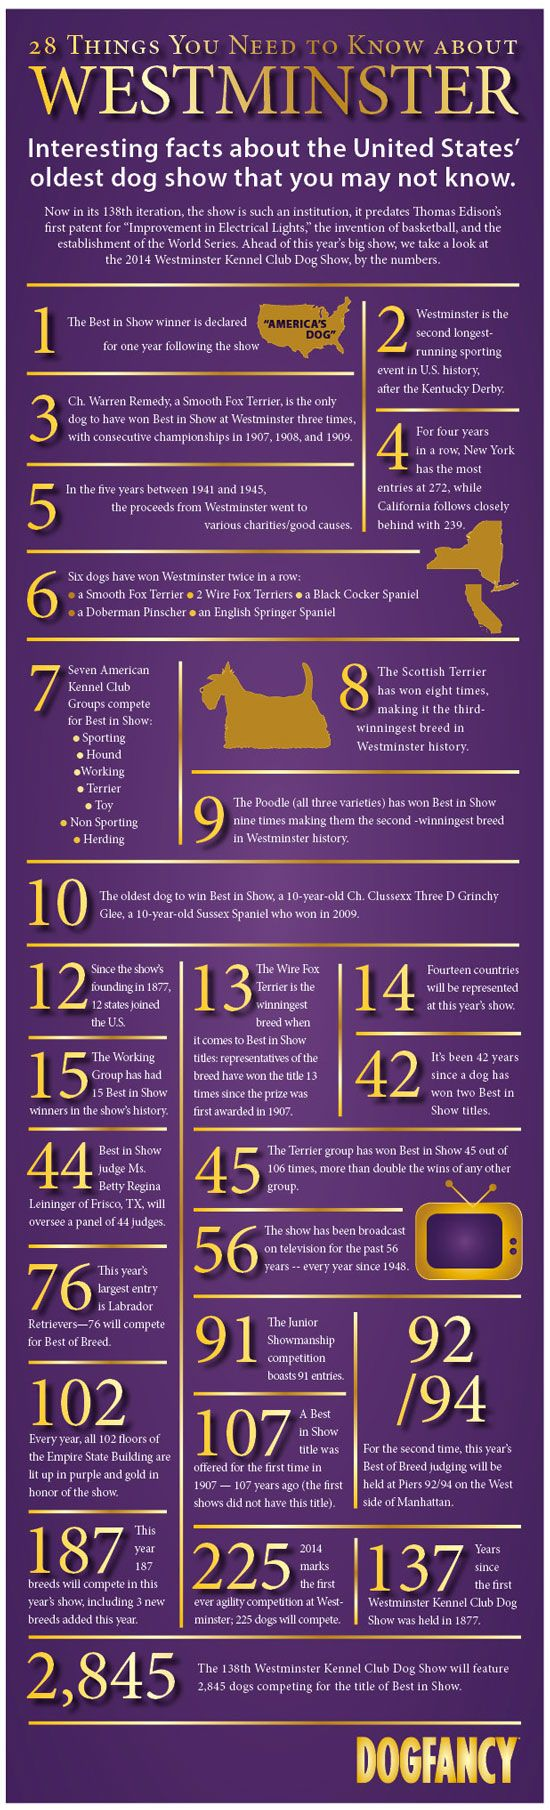 Get the facts about the Westminster Dog Show that you may not know, but should.